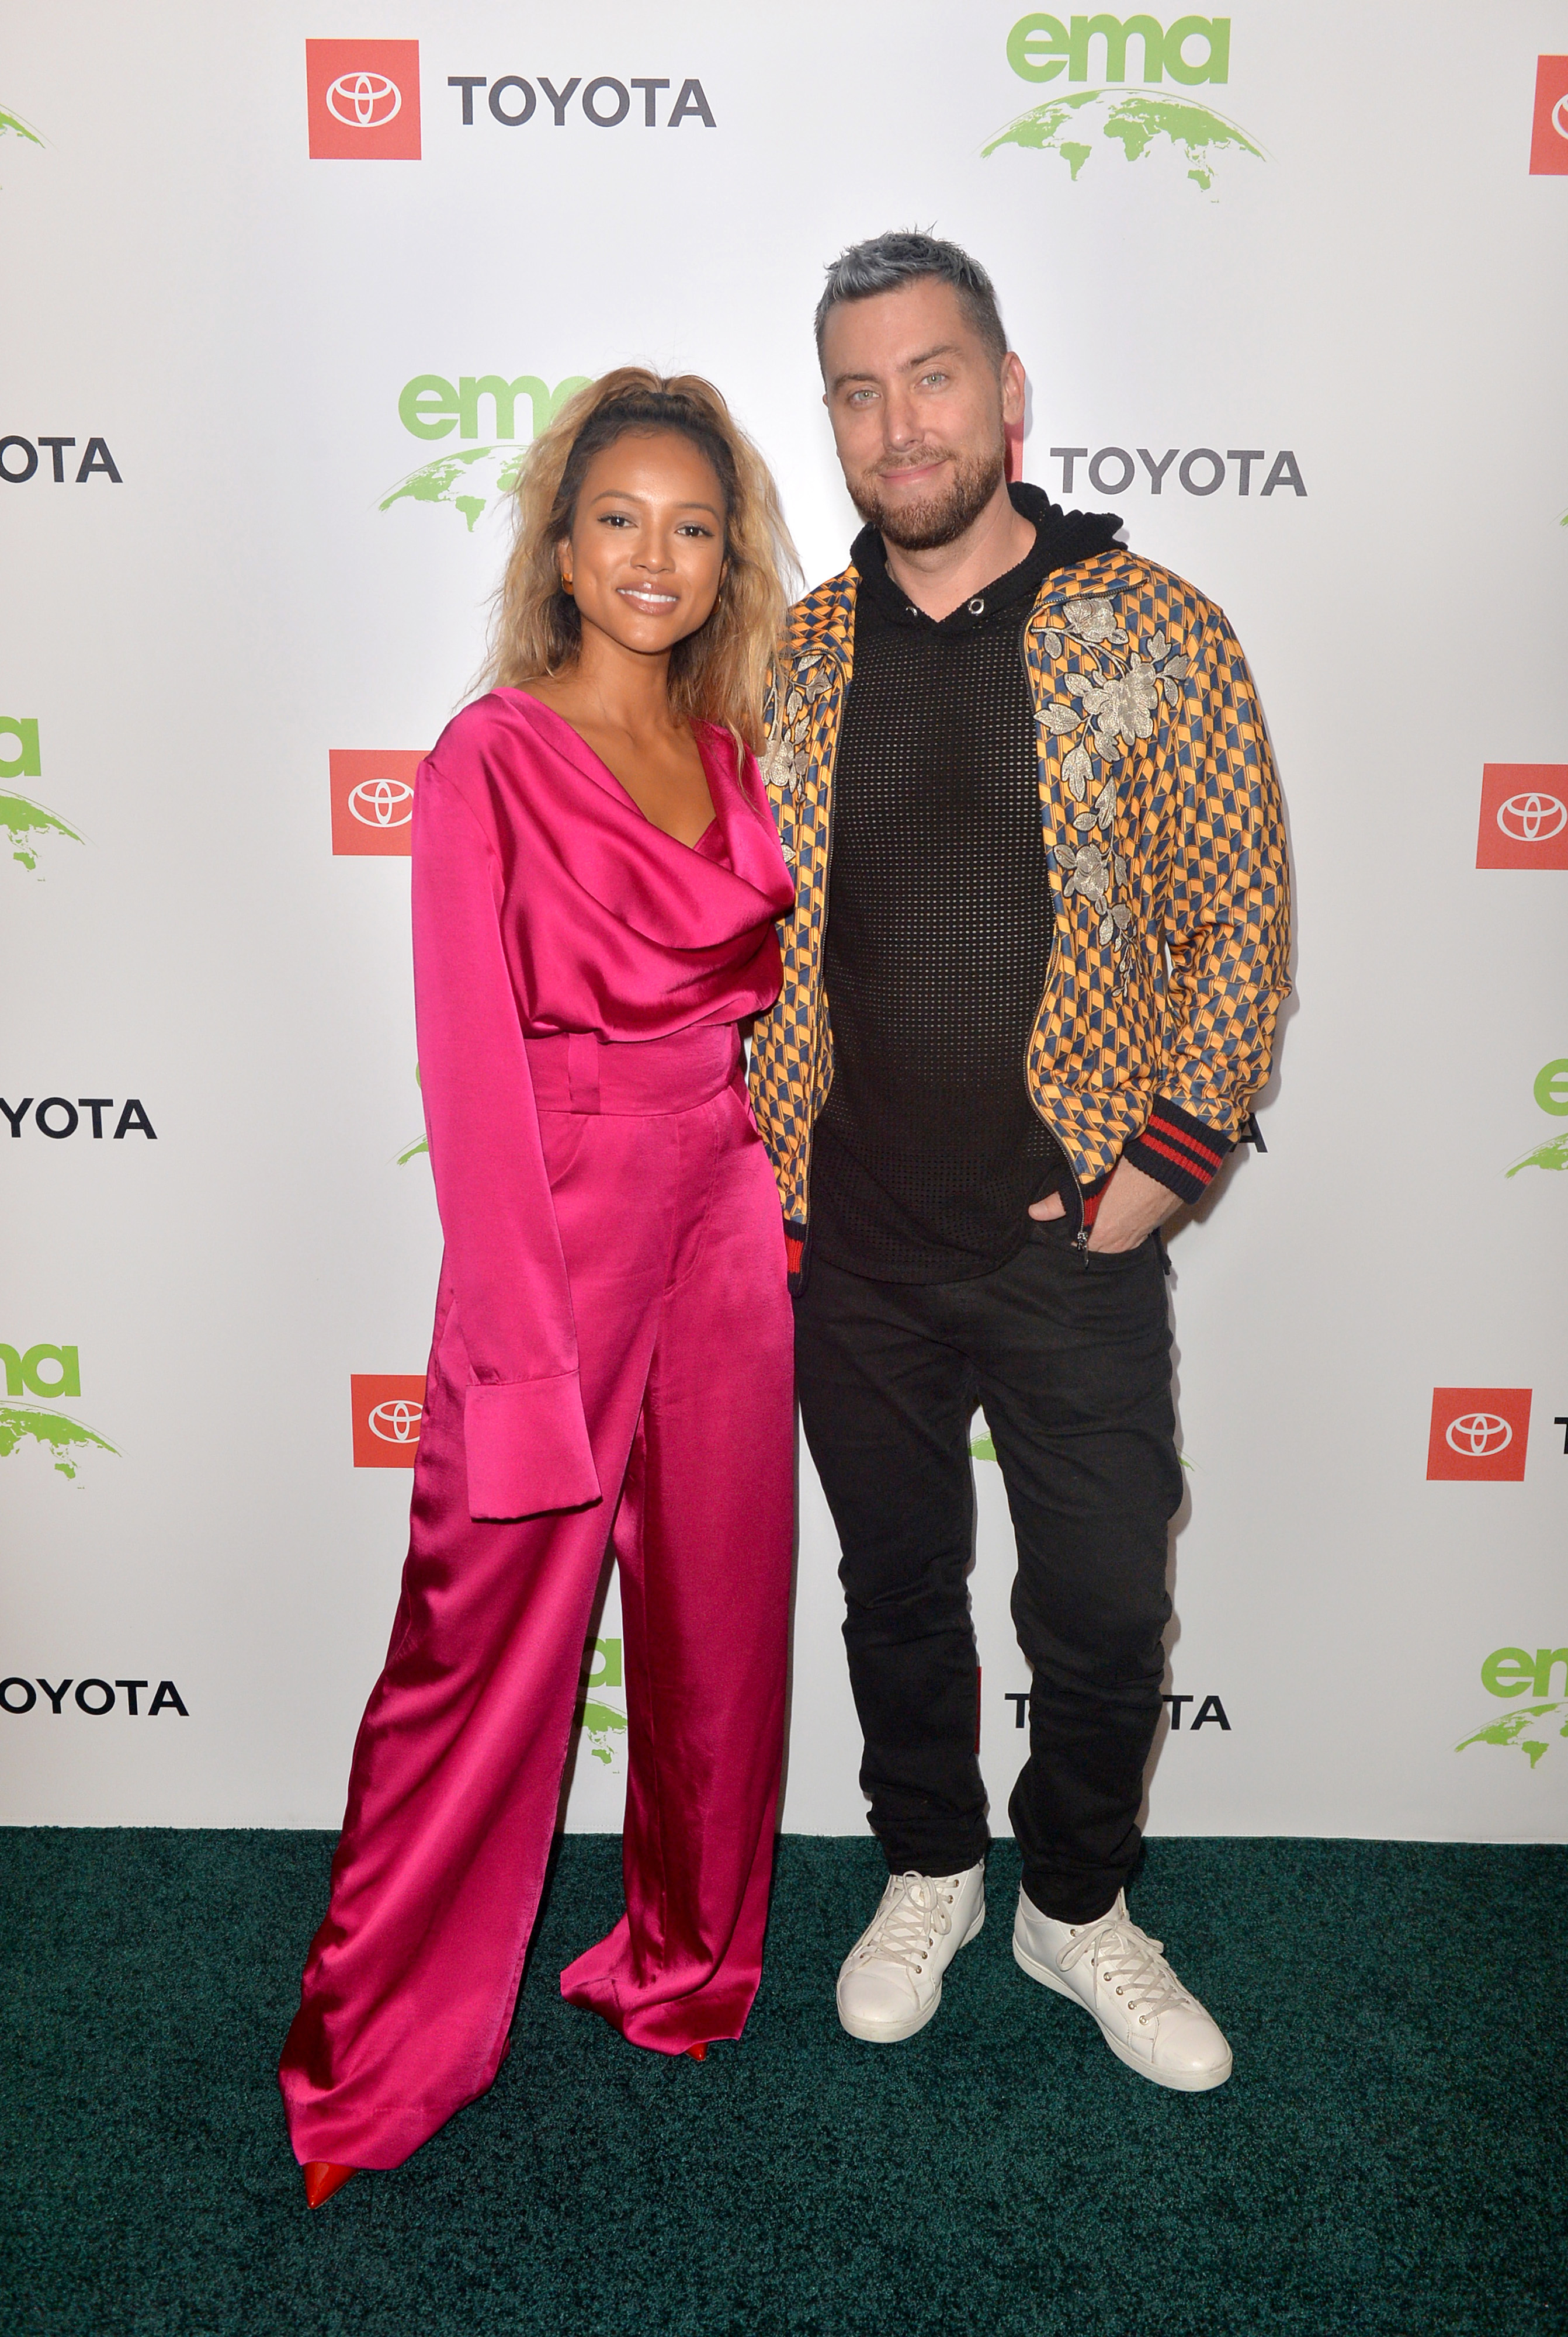 Karrueche Tran and Lance Bass attend the first day of the EMA IMPACT Summit at the Montage Beverly Hills hotel on May 29, 2019.